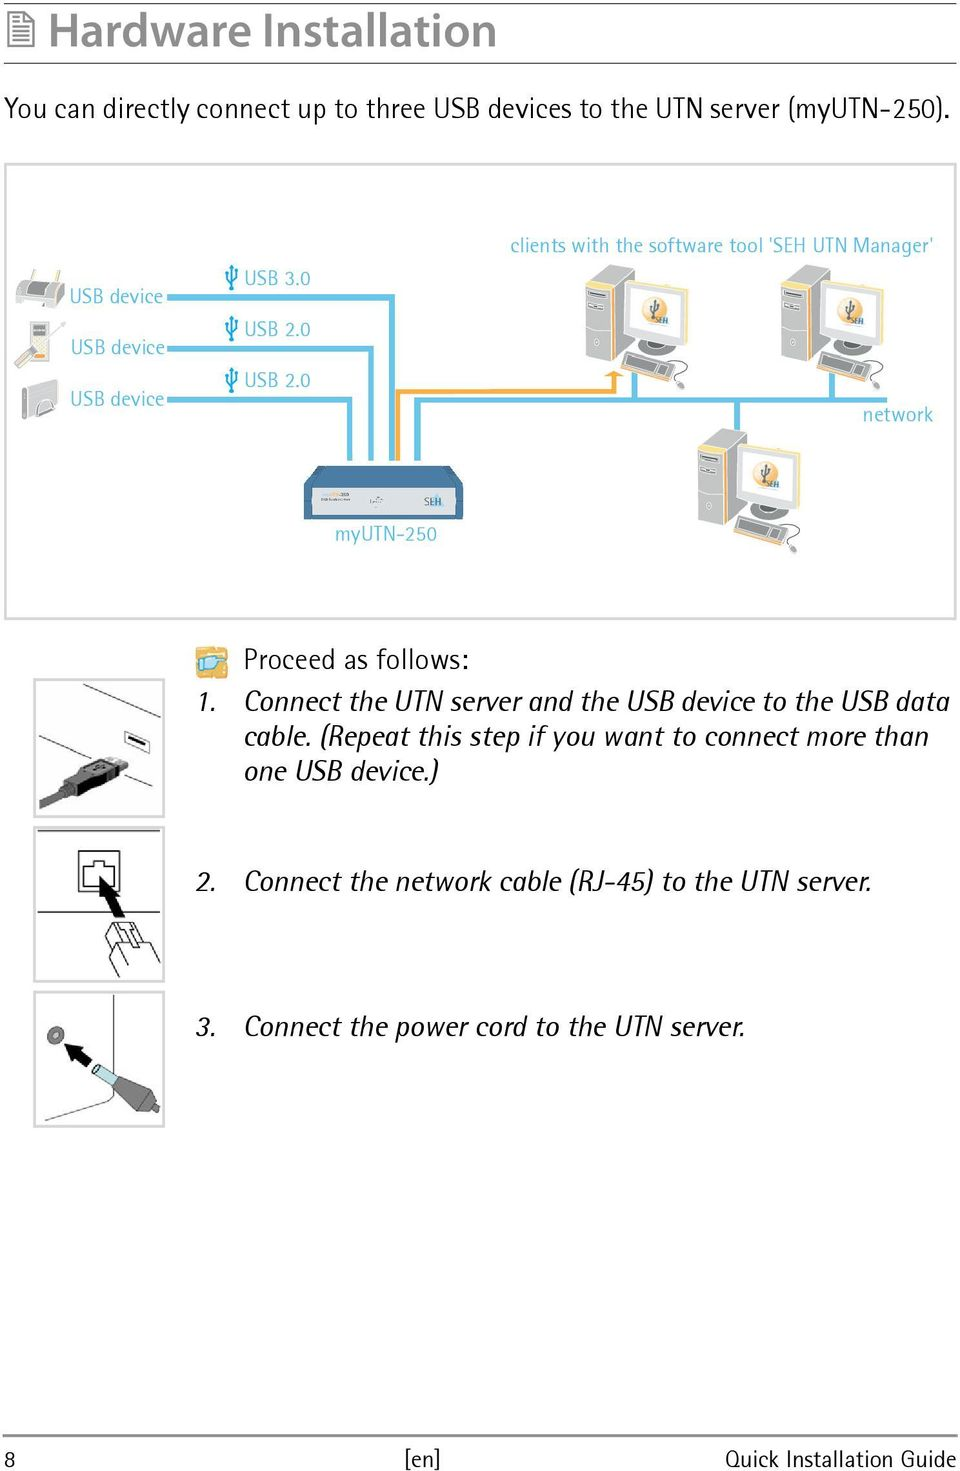 0 USB 2.0 clients with the software tool 'SEH UTN Manager' network myutn-250 Proceed as follows: 1.